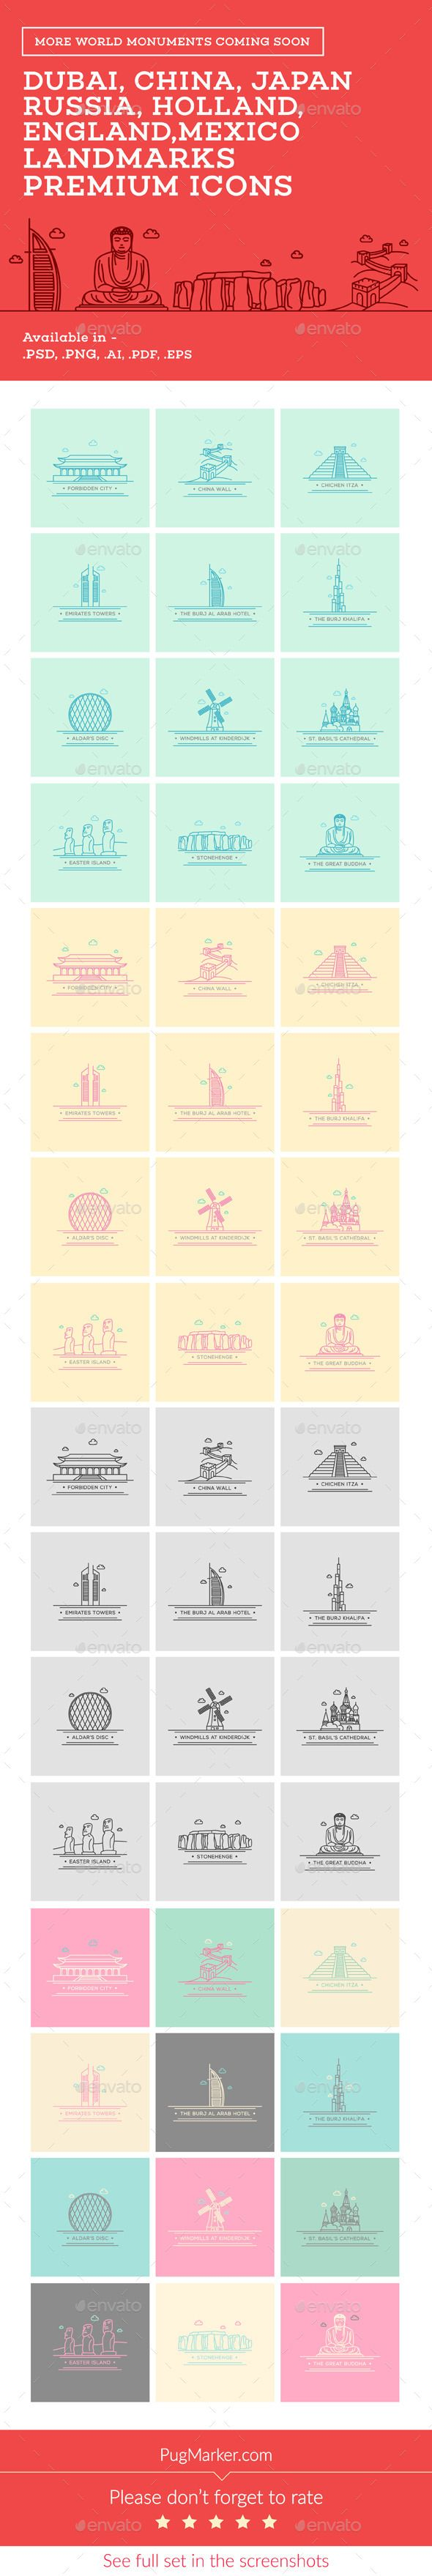 World Landmark Icons Vol 2 29